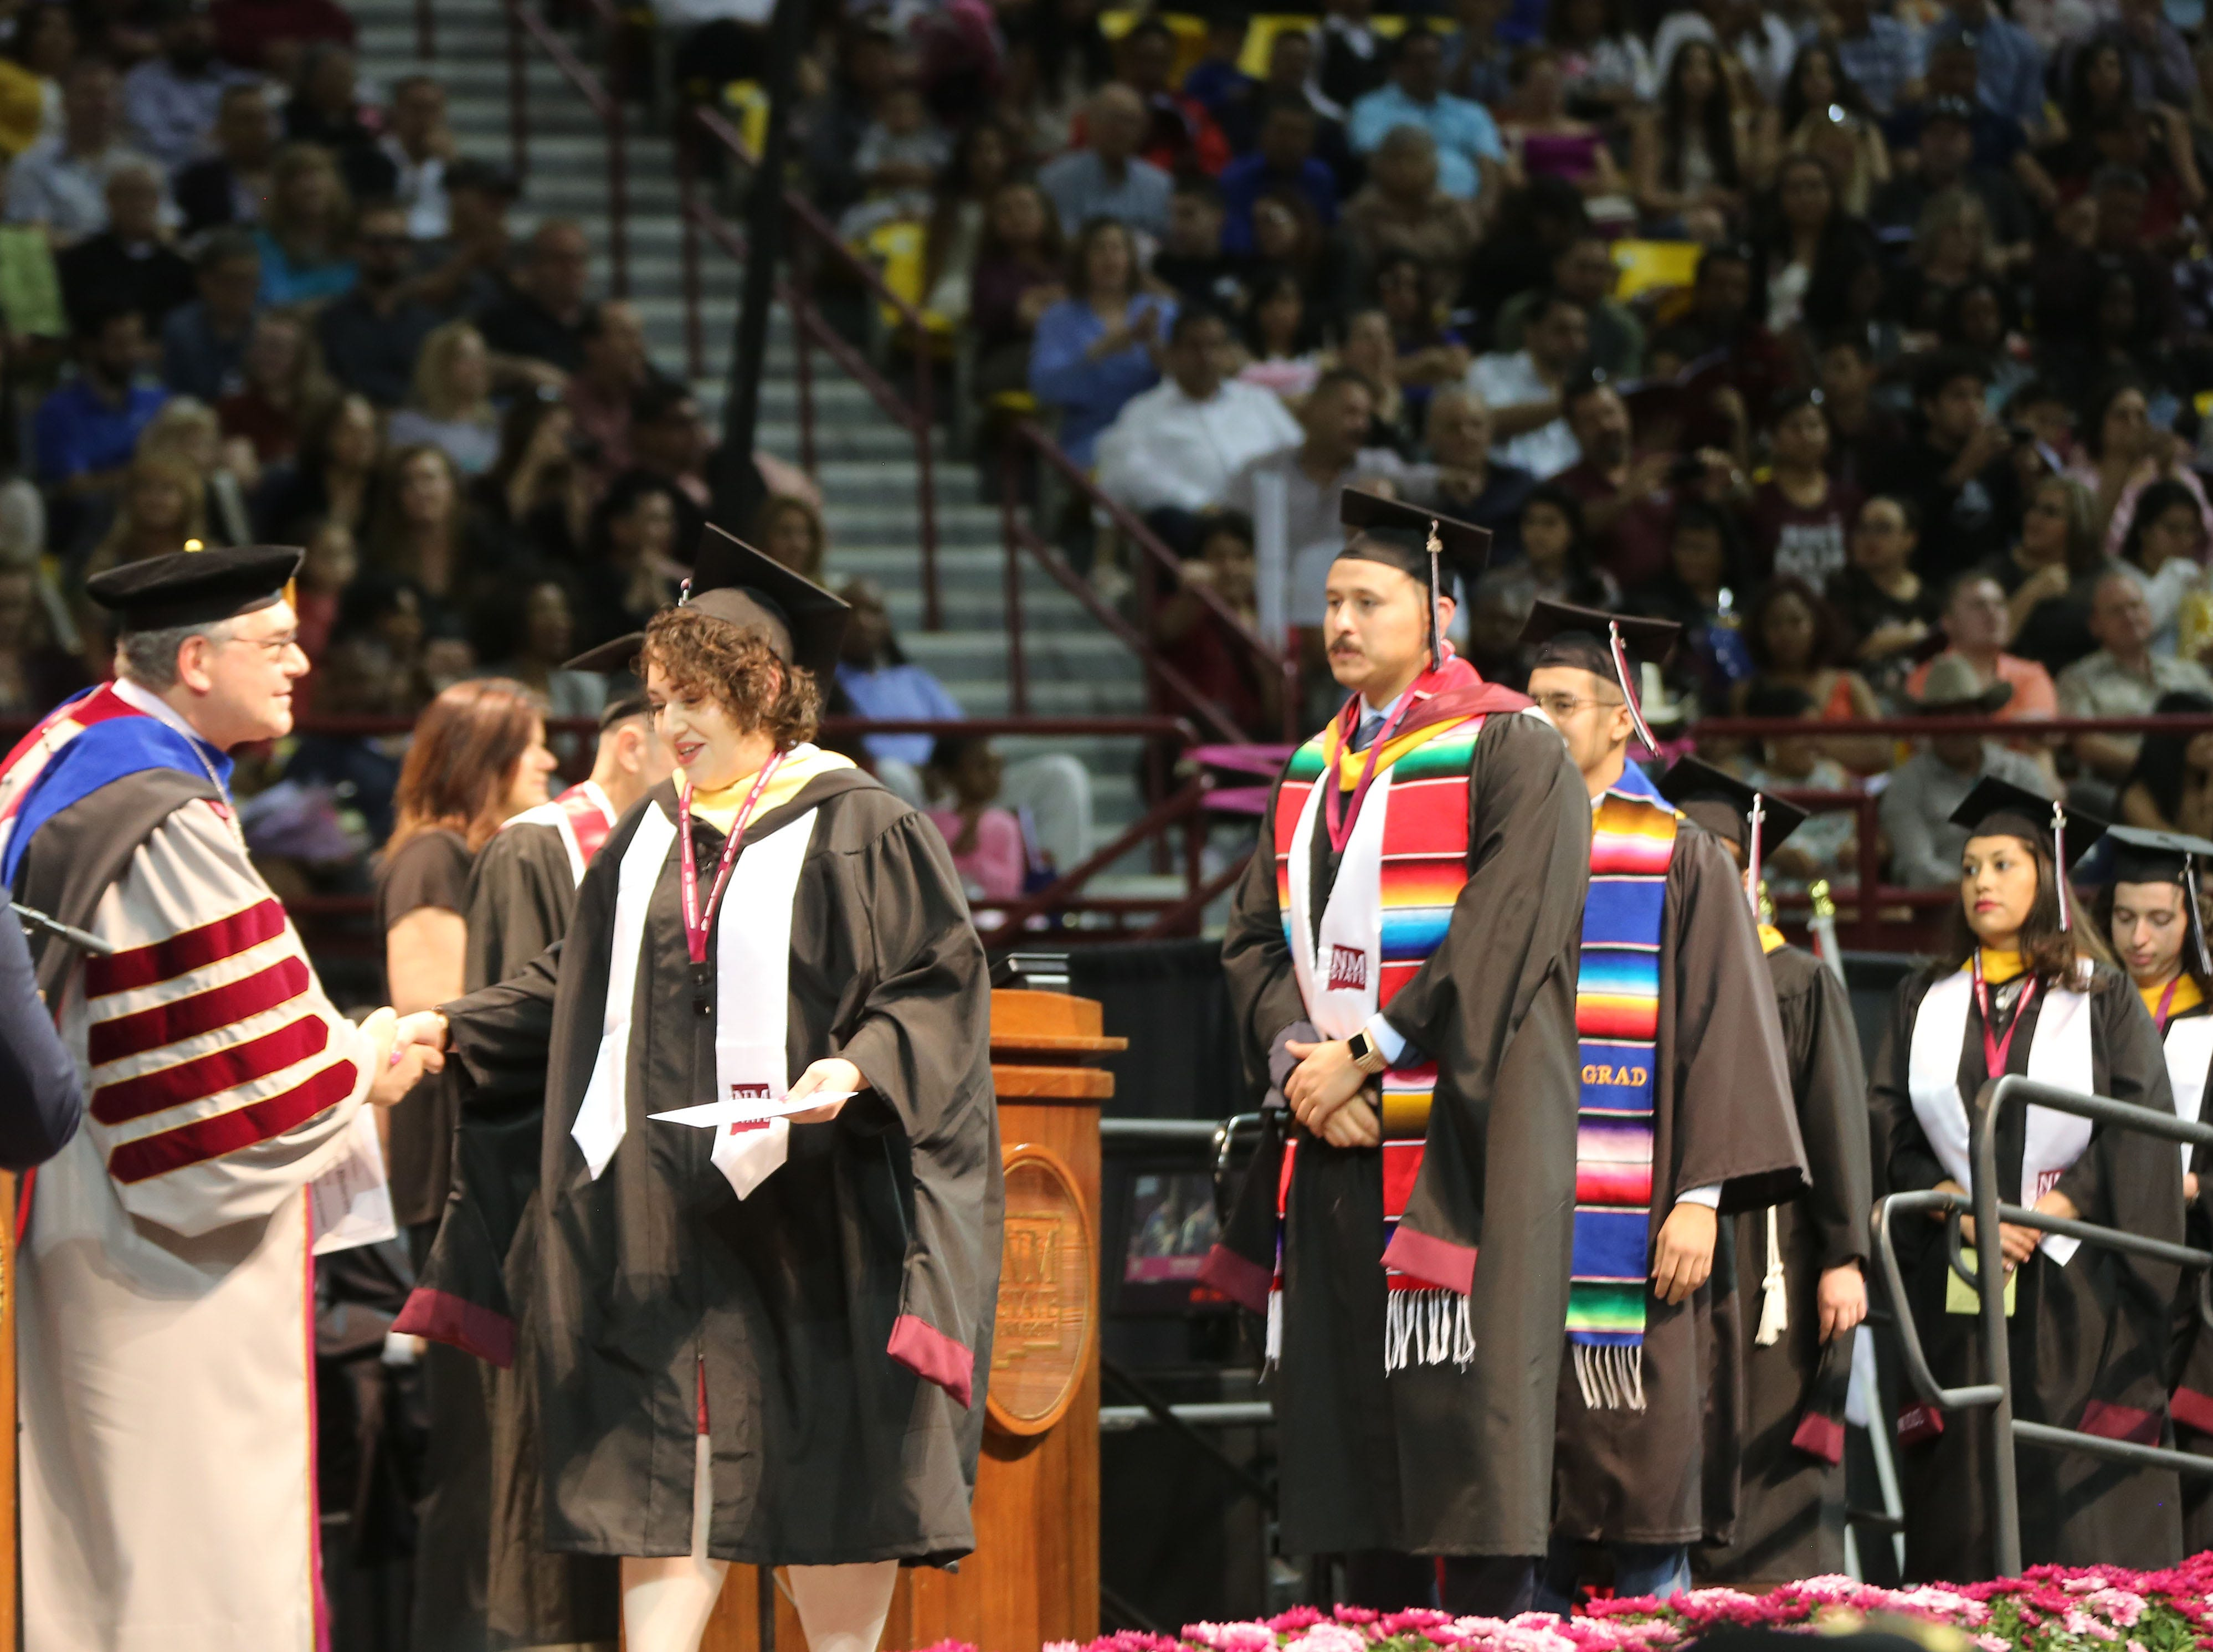 New Mexico State Universities Business College, awarded 202 degrees during commencement ceremonies Saturday May 11, 2019.